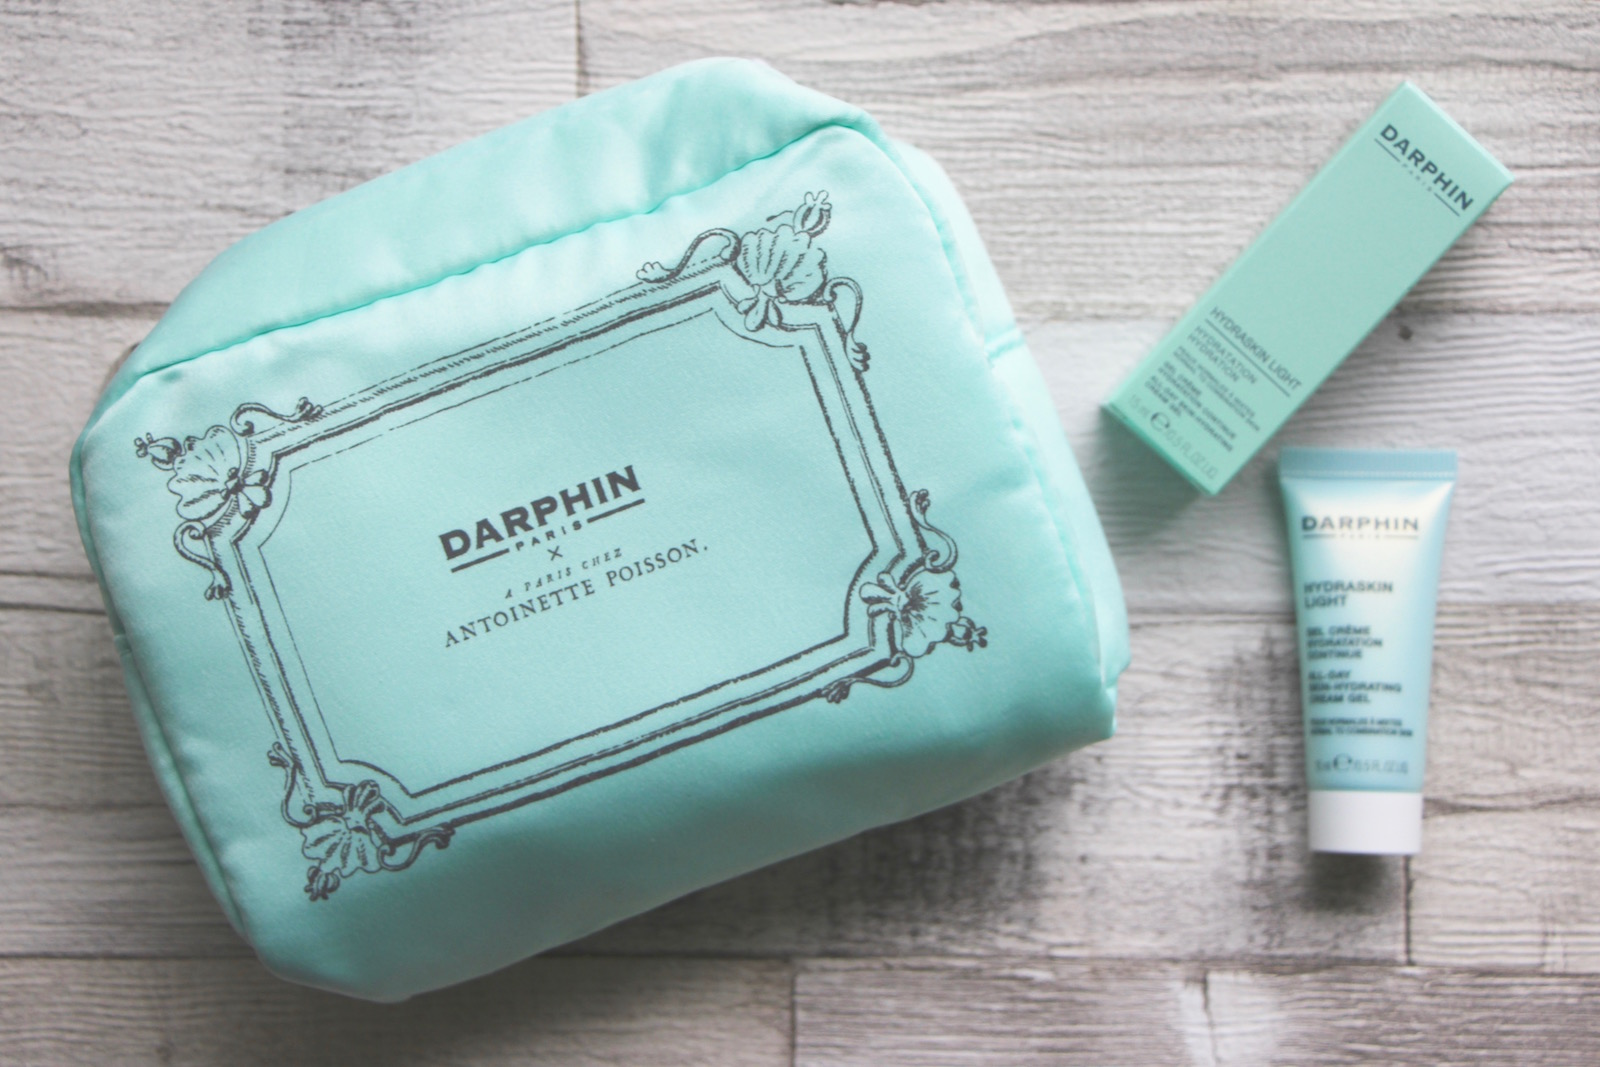 darphin hydraskin all day eye refresh gel cream review